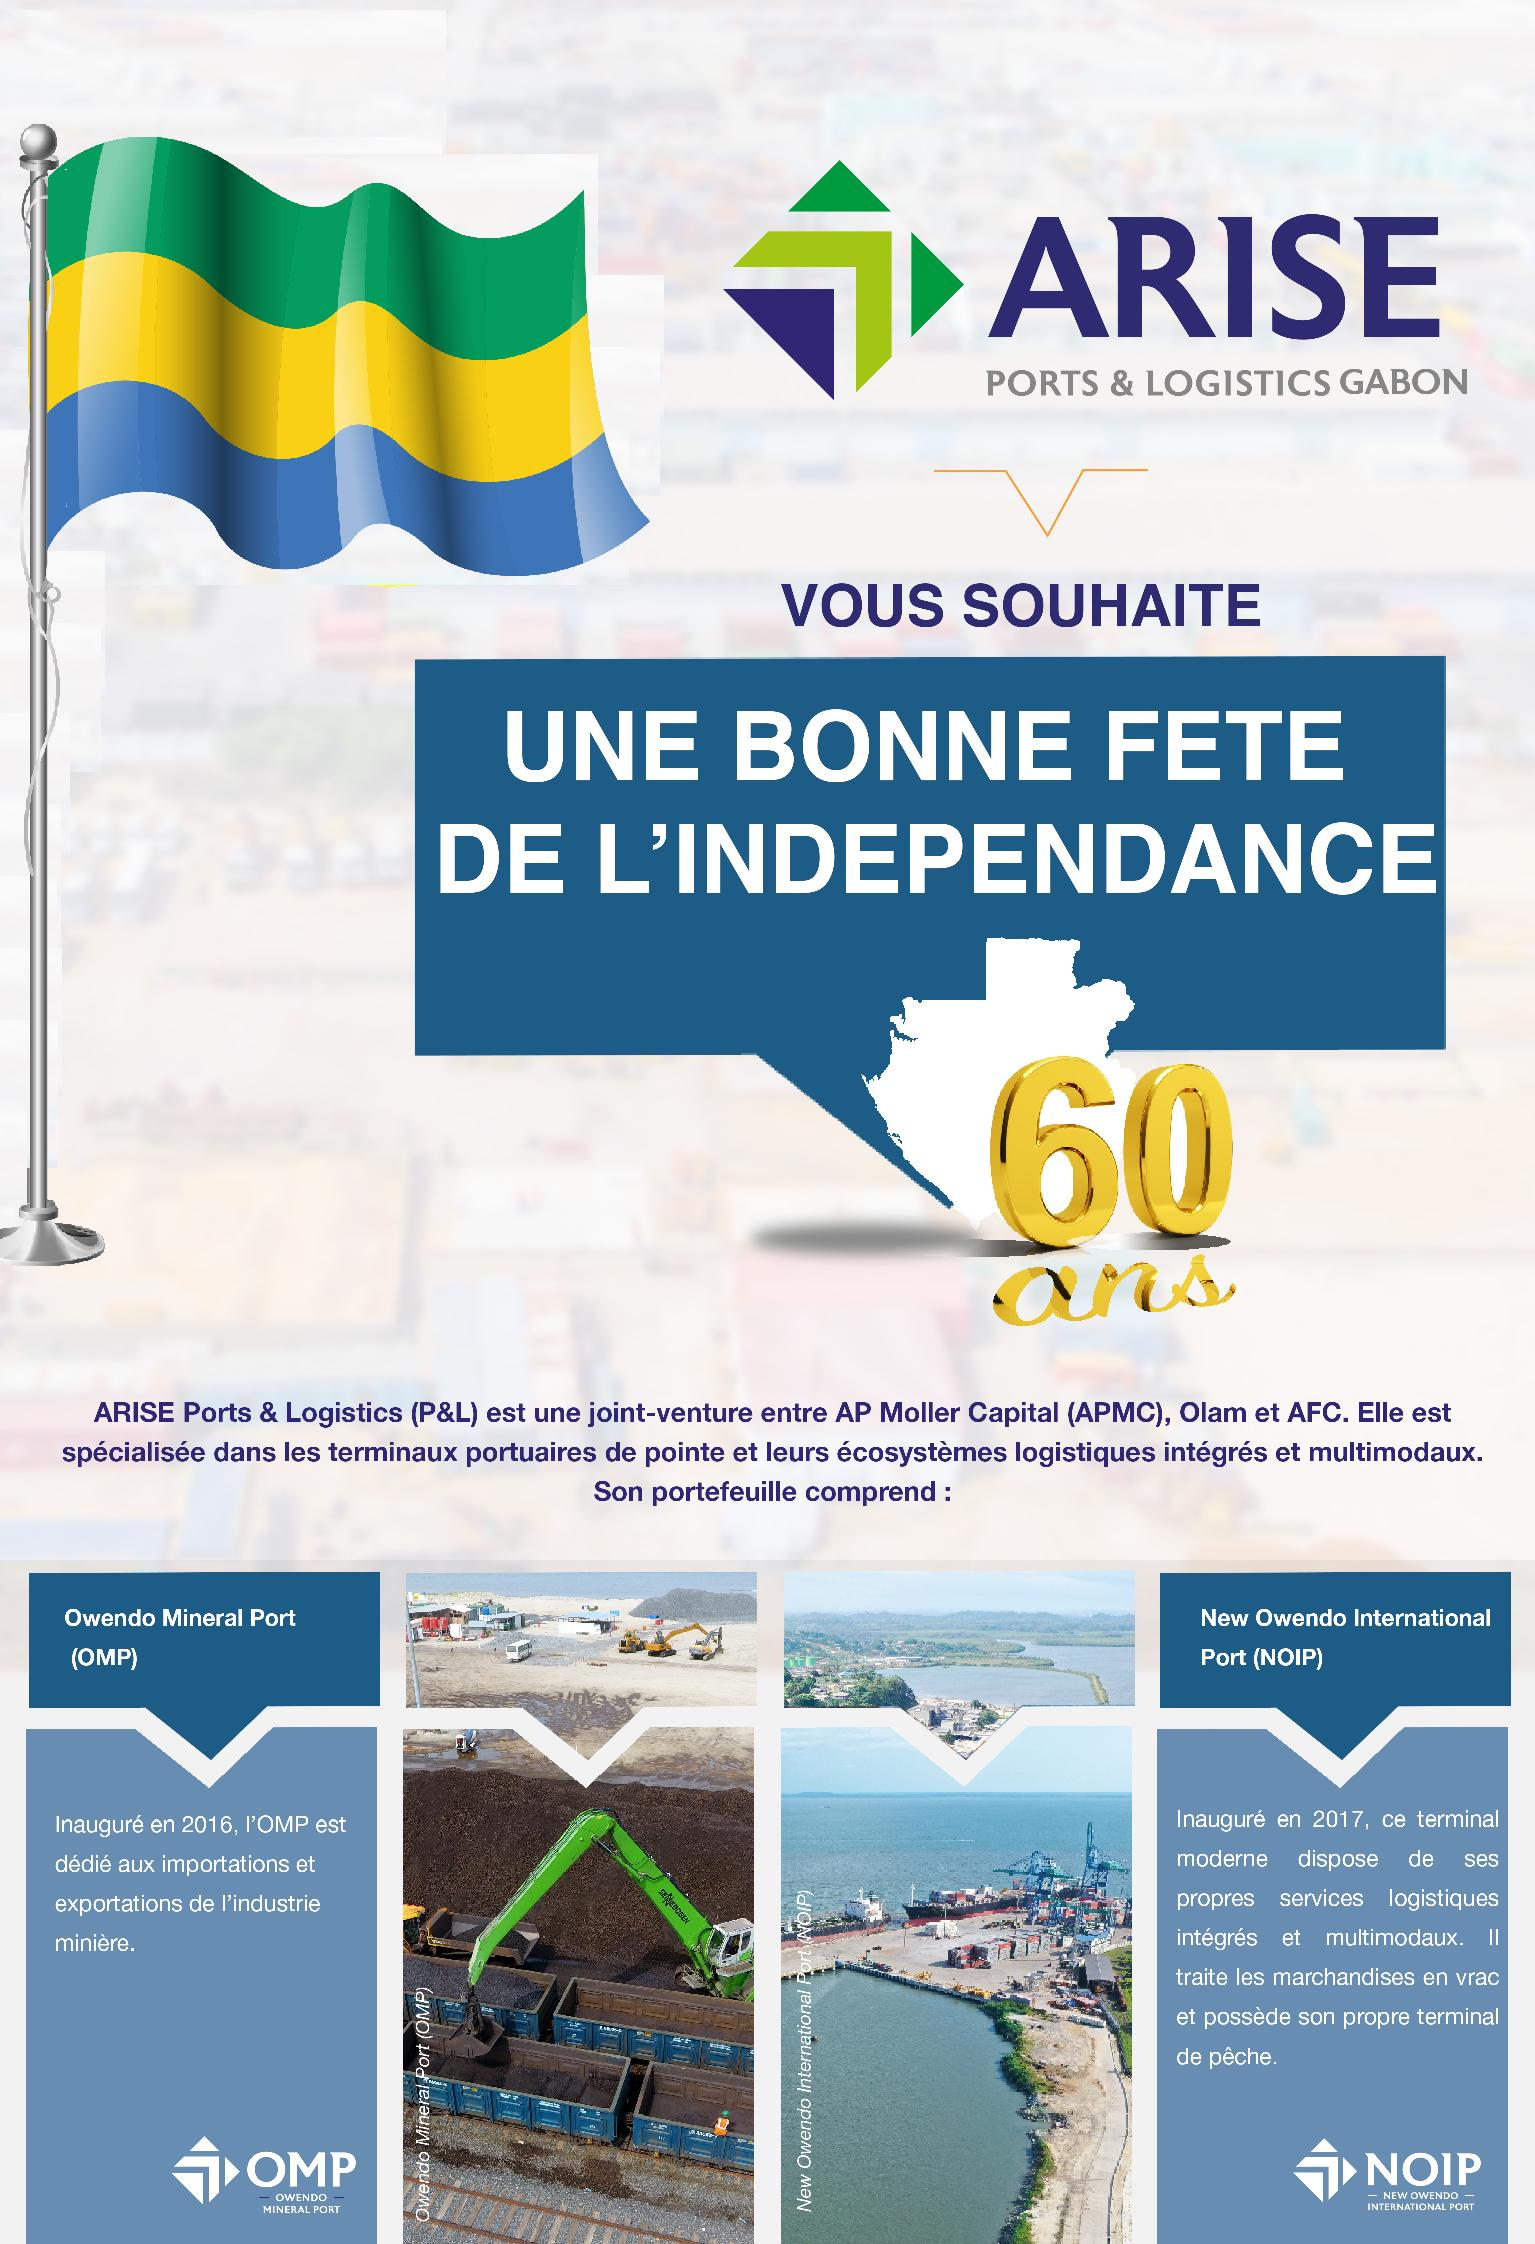 ARISE PORTS AND LOGISTICS GABON